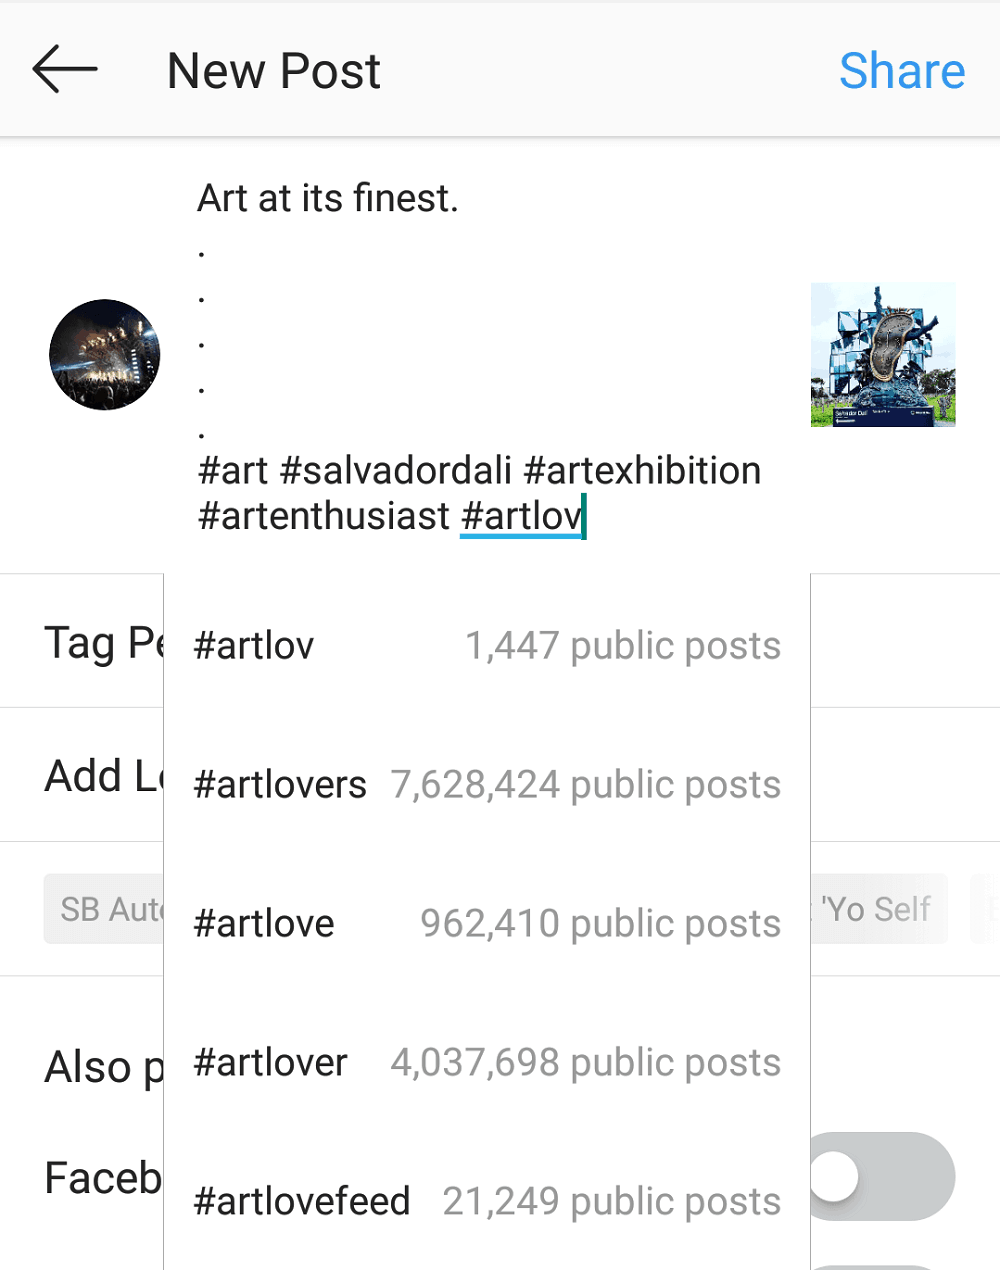 Finding Instagram hashtags - using the search function